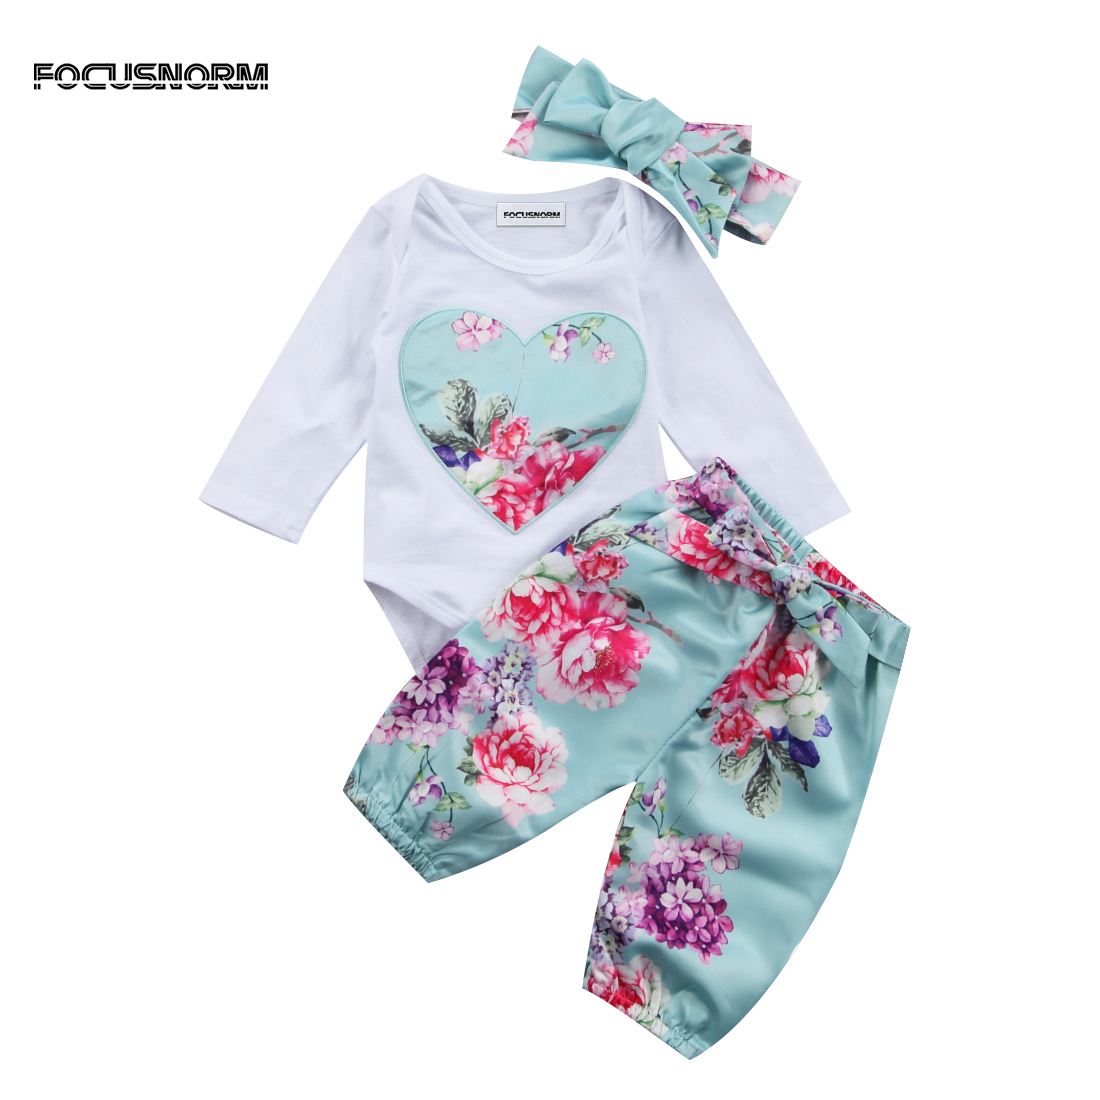 Newborn Kid Baby Girl Floral Clothes Long Sleeve   Romper   Jumpsuit Round Neck   Romper   Pants Outfit Sets